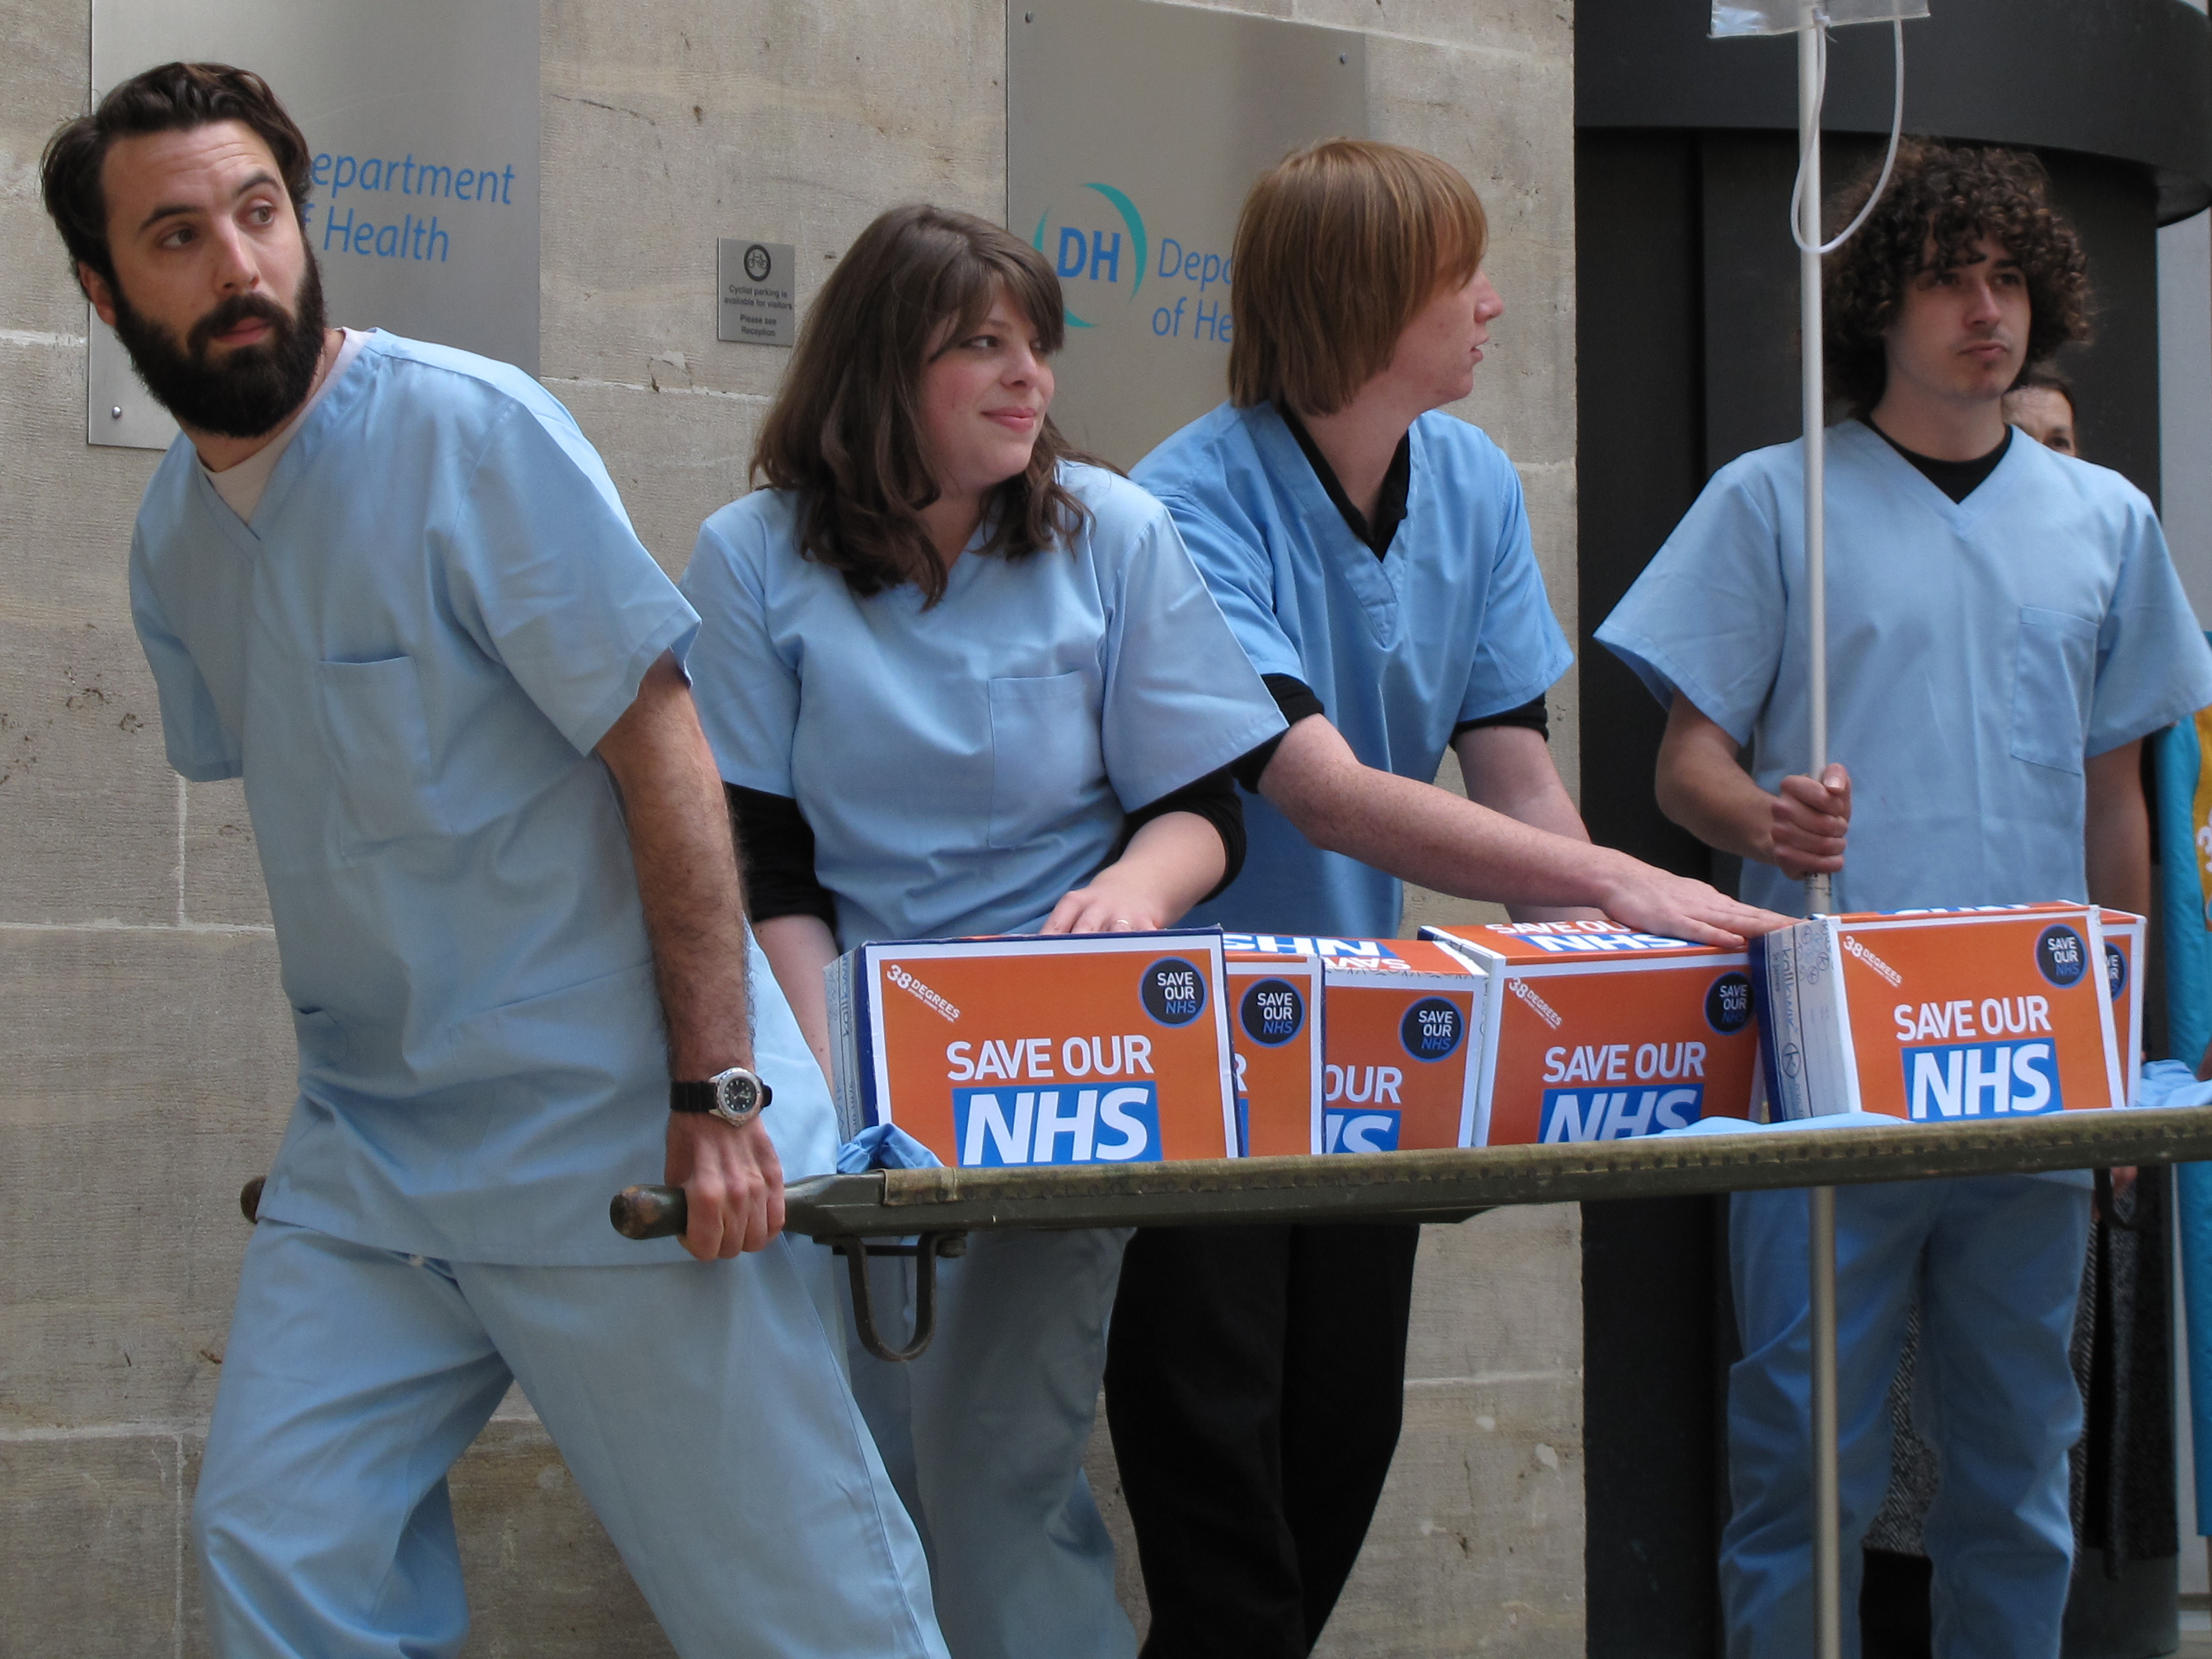 38 Degrees members deliver a petition of over 410,000 names to the NHS. Their message: Save Our NHS